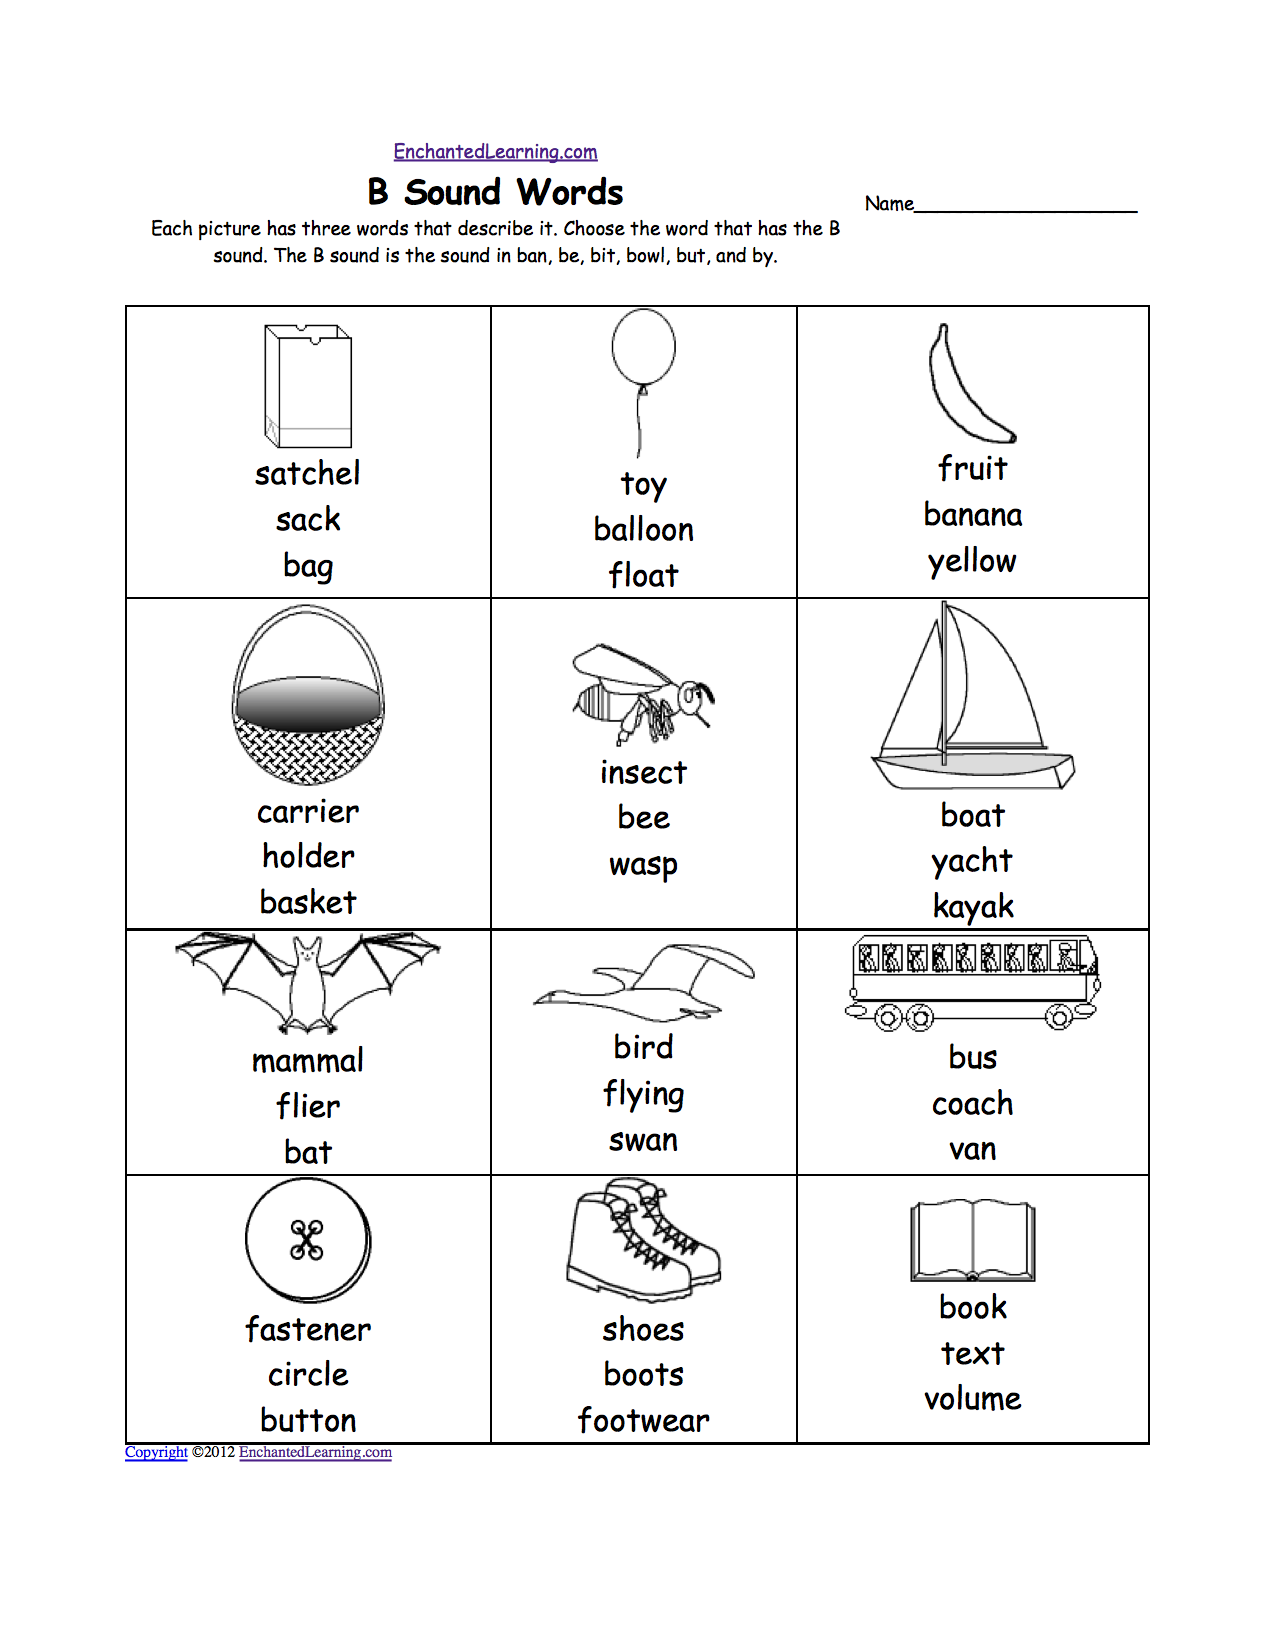 Weirdmailus  Unusual Phonics Worksheets Multiple Choice Worksheets To Print  With Inspiring Quotbquot Sound Phonics Worksheet Multiple Choice Each Picture Has Three Words That Describe It Choose The Word That Has A Quotbquot Sound The Quotbquot Sound Is The Sound  With Delightful Latitude And Longitude Map Worksheet Also Seventh Grade Reading Comprehension Worksheets In Addition Relative Pronouns Worksheets Th Grade And Algebra Problem Worksheets As Well As  Kingdoms Worksheet Additionally Saving Private Ryan Worksheet From Enchantedlearningcom With Weirdmailus  Inspiring Phonics Worksheets Multiple Choice Worksheets To Print  With Delightful Quotbquot Sound Phonics Worksheet Multiple Choice Each Picture Has Three Words That Describe It Choose The Word That Has A Quotbquot Sound The Quotbquot Sound Is The Sound  And Unusual Latitude And Longitude Map Worksheet Also Seventh Grade Reading Comprehension Worksheets In Addition Relative Pronouns Worksheets Th Grade From Enchantedlearningcom